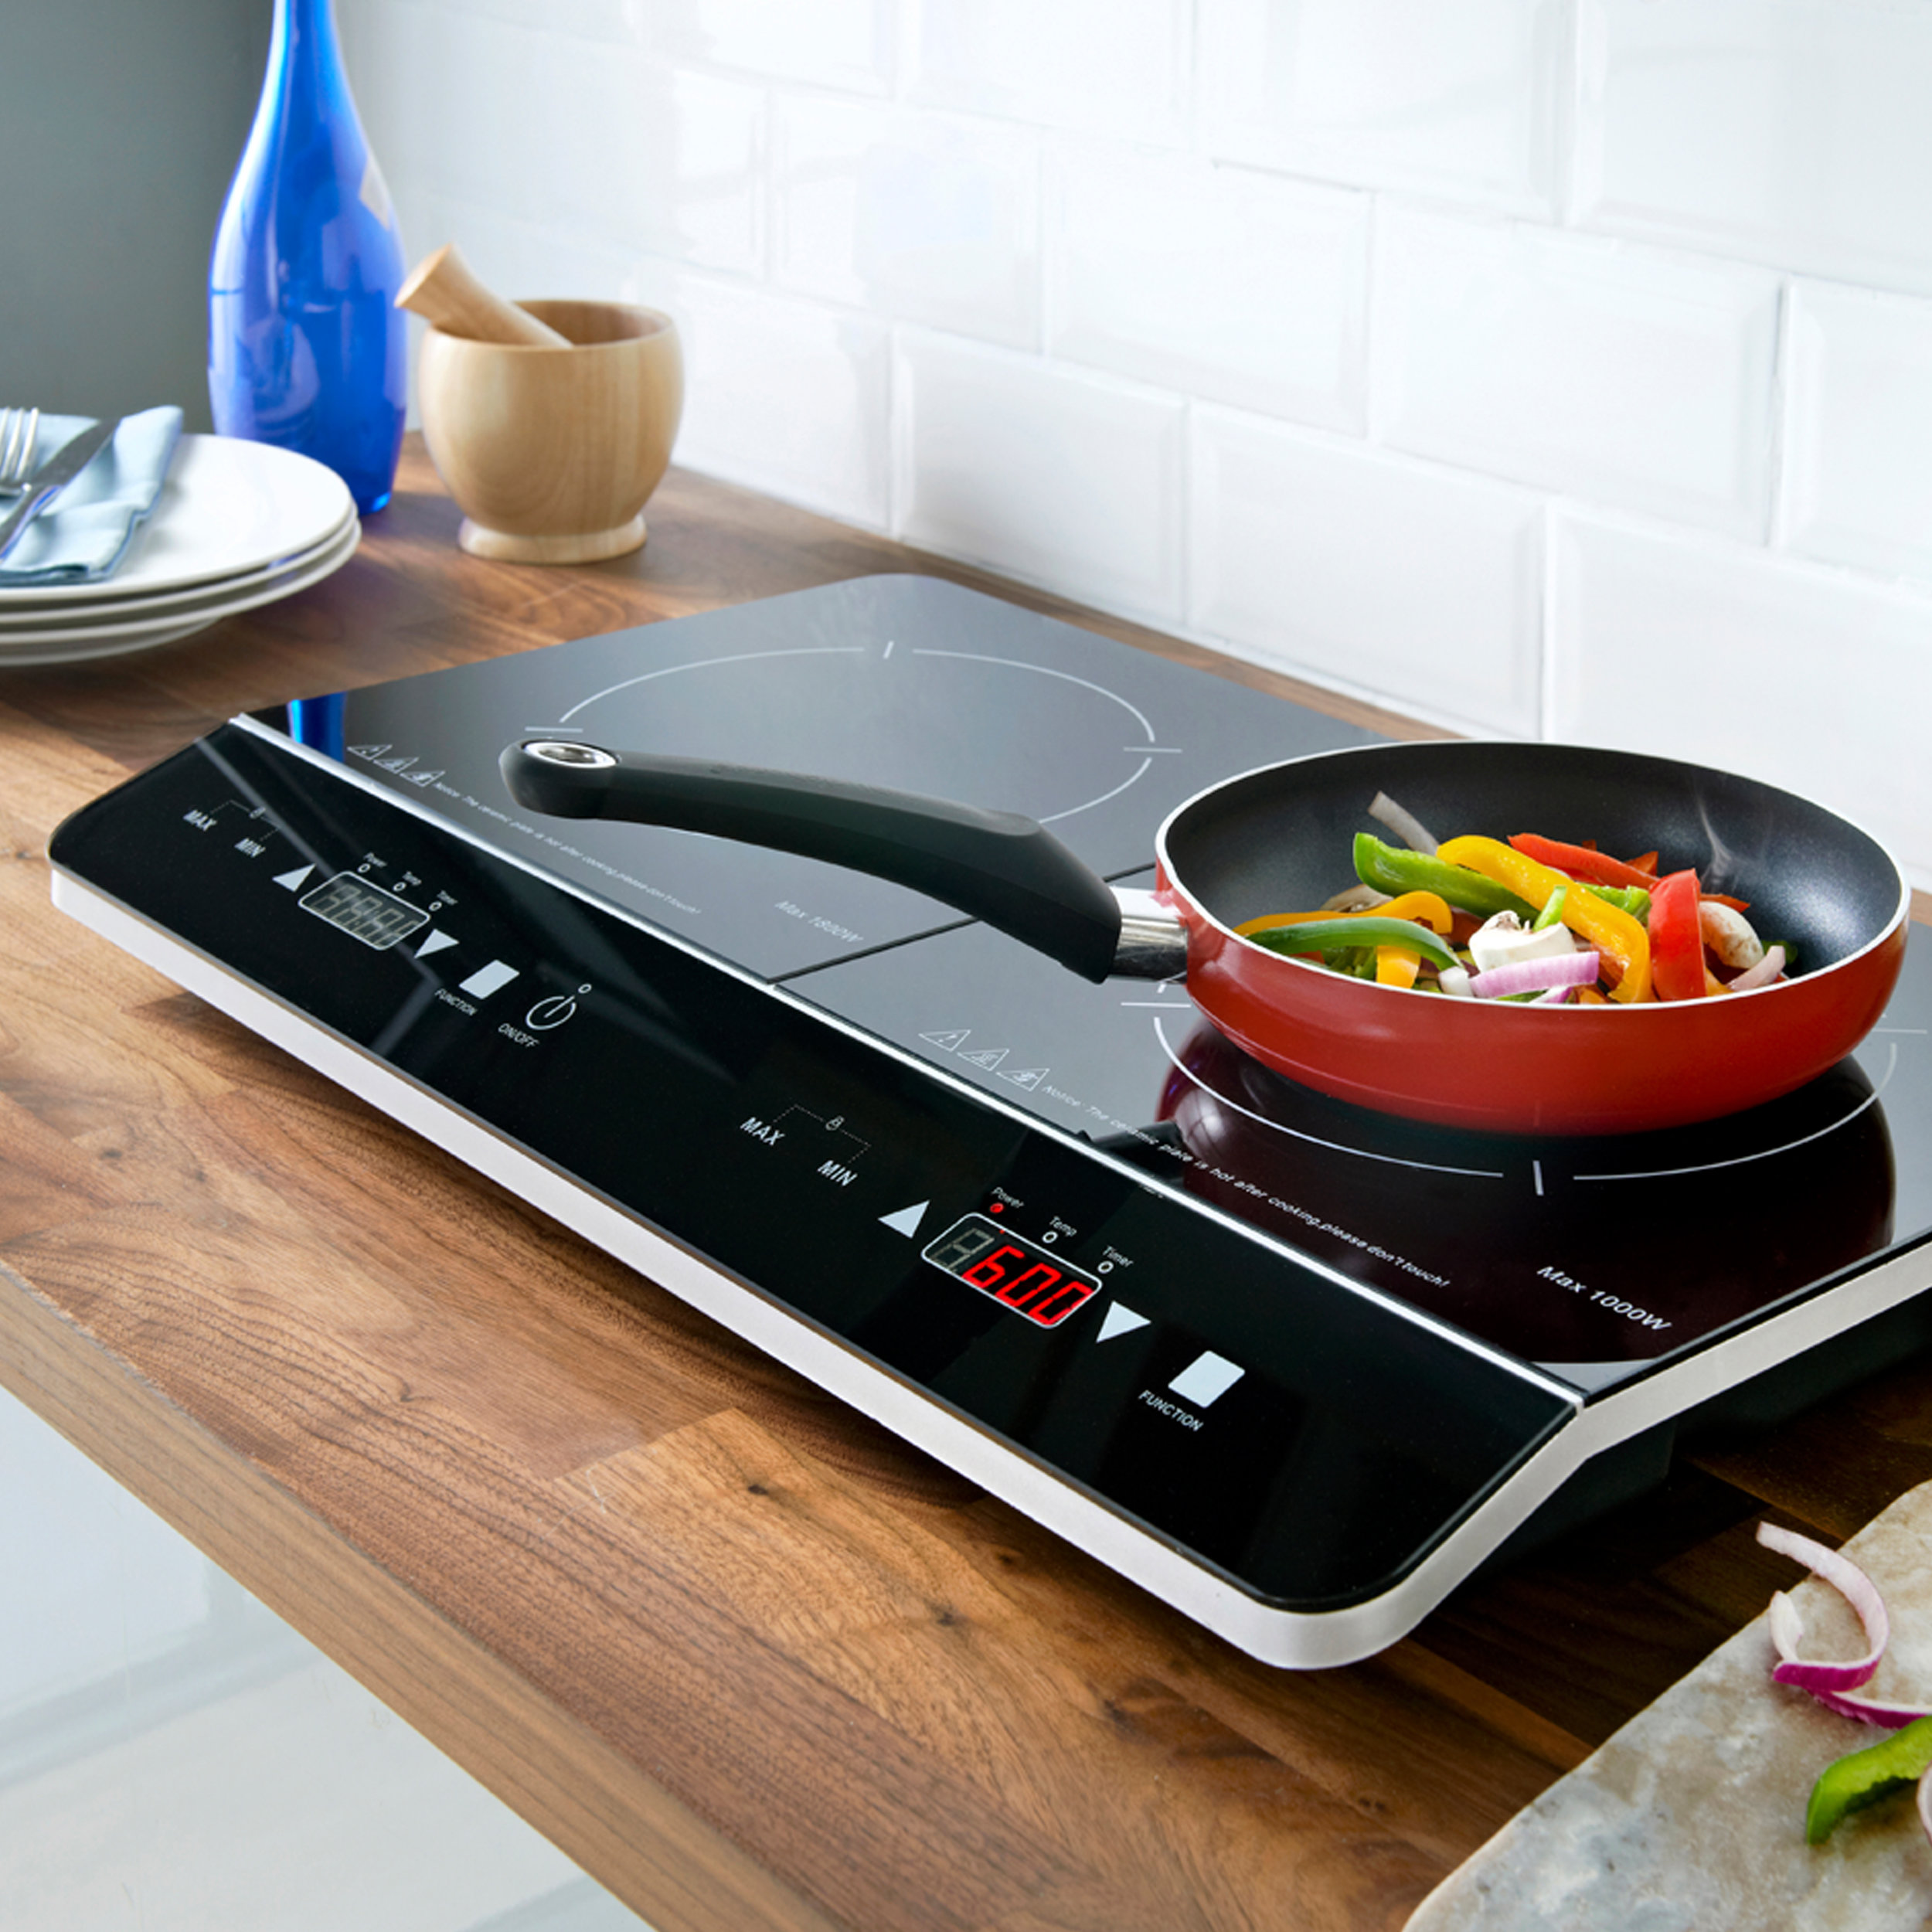 Double Digital Induction Hob cooking vegetables